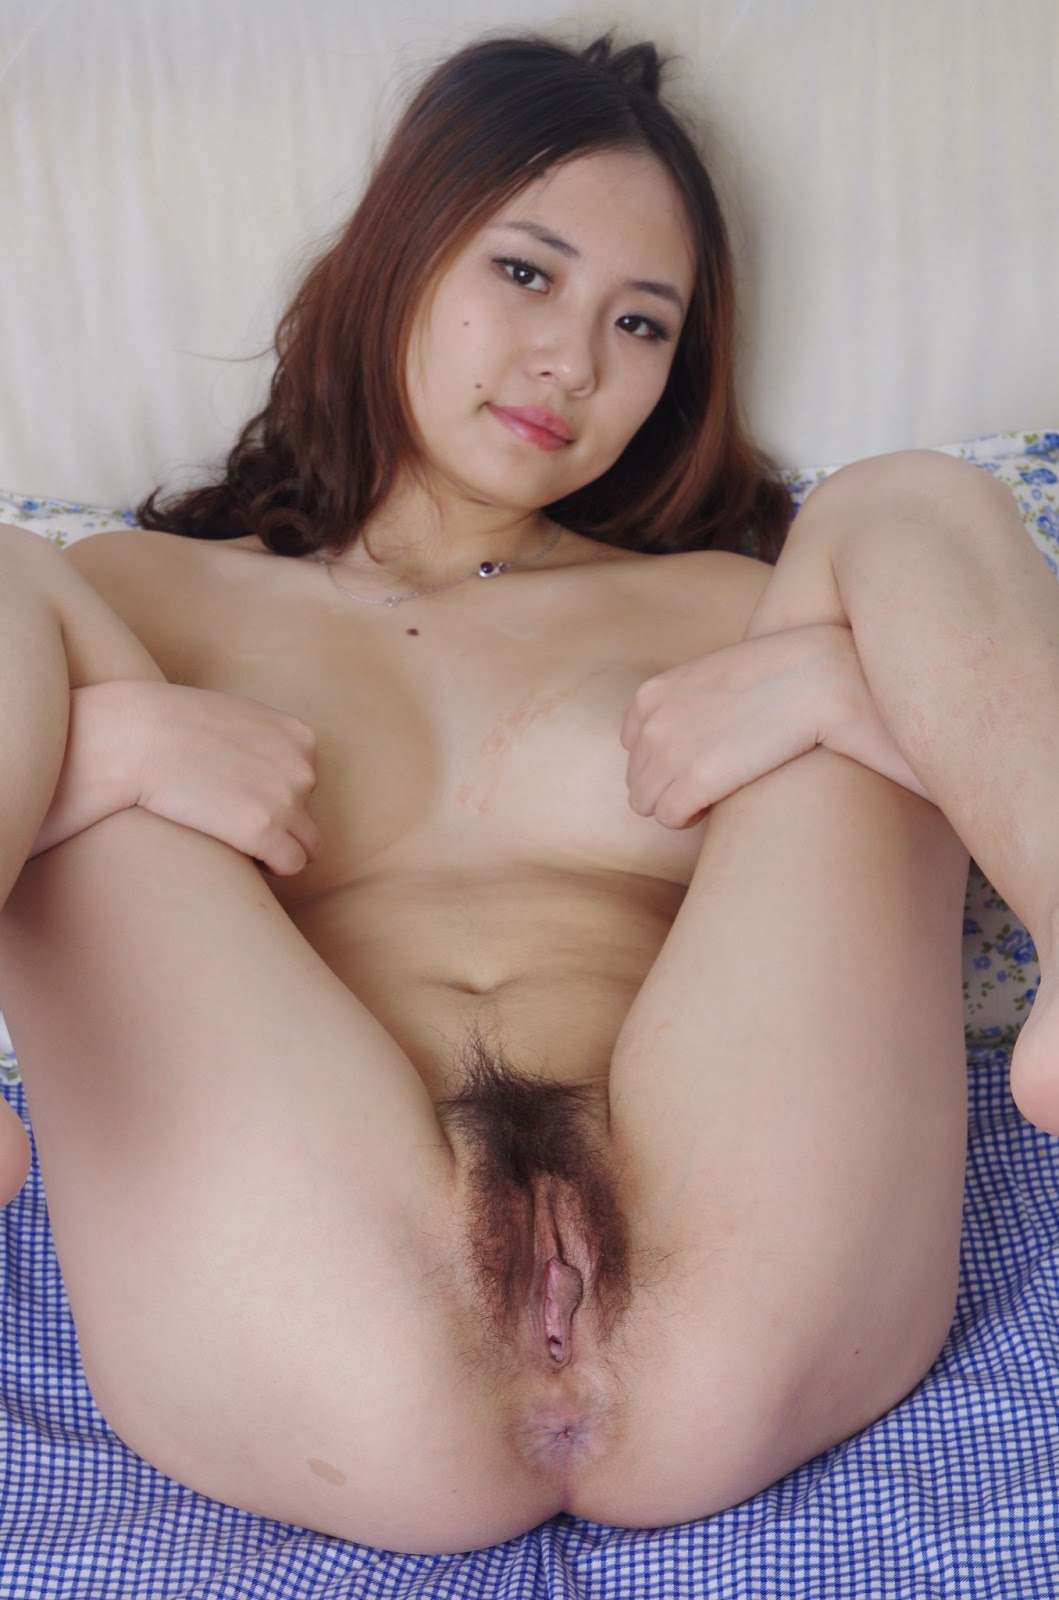 Naked asian girls nude